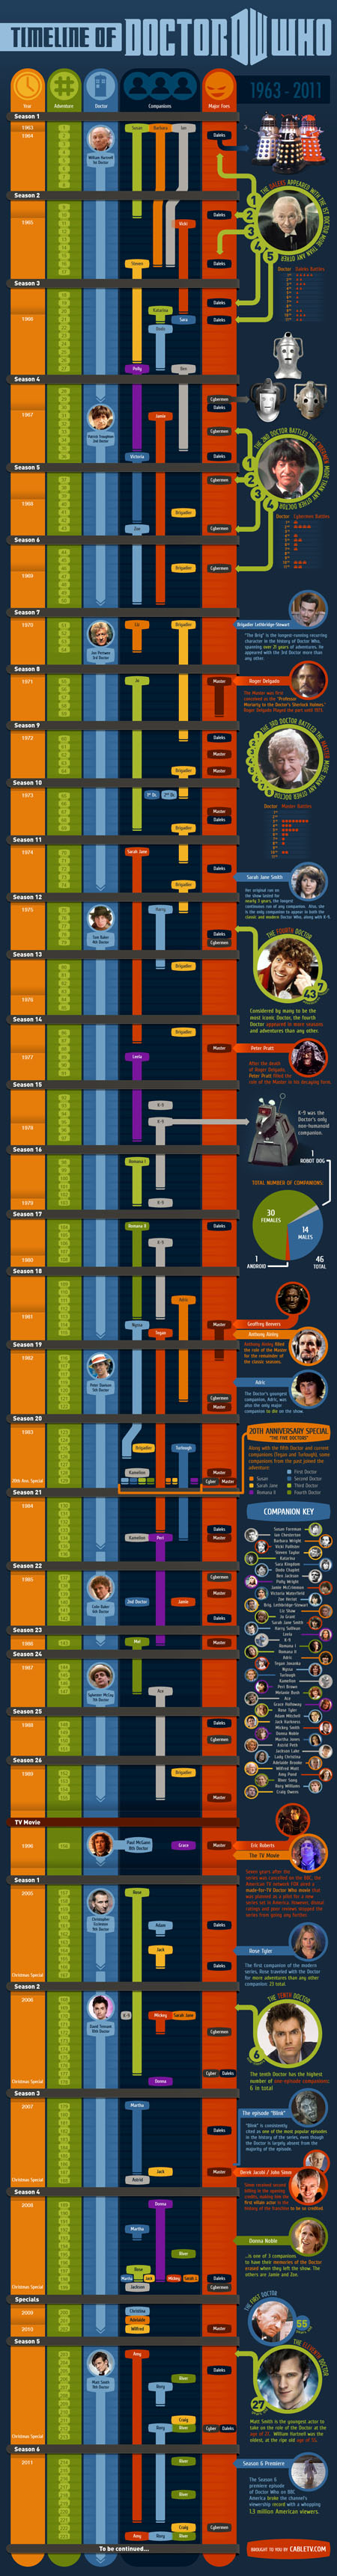 Doctor Who Timeline From Episode One to the Marriage of River Song.